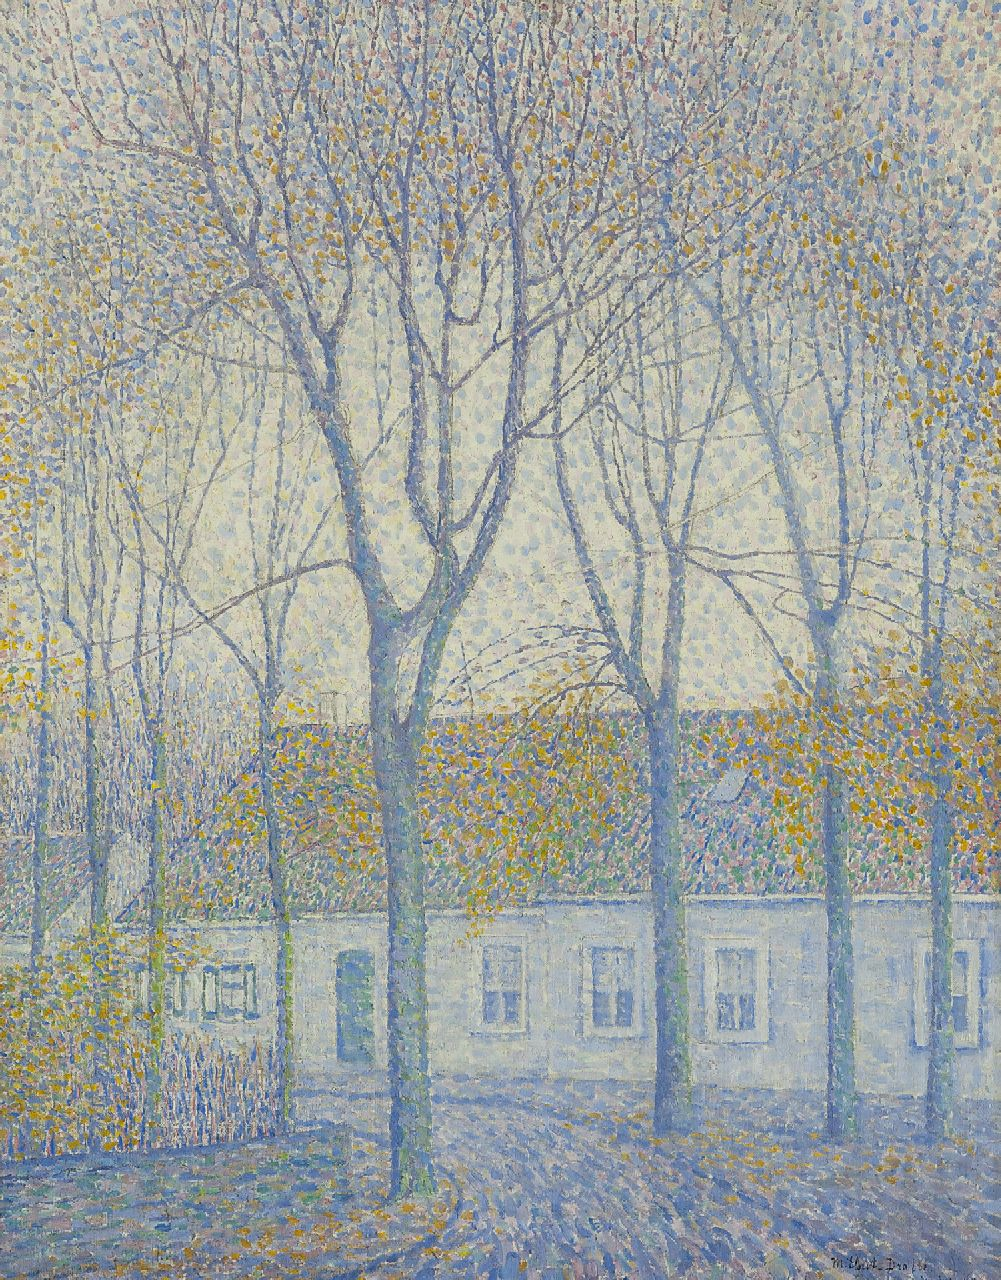 Mies Elout-Drabbe | Autumn in Domburg, oil on canvas, 69.9 x 54.9 cm, signed l.r. and dated 'Domburg' 1912